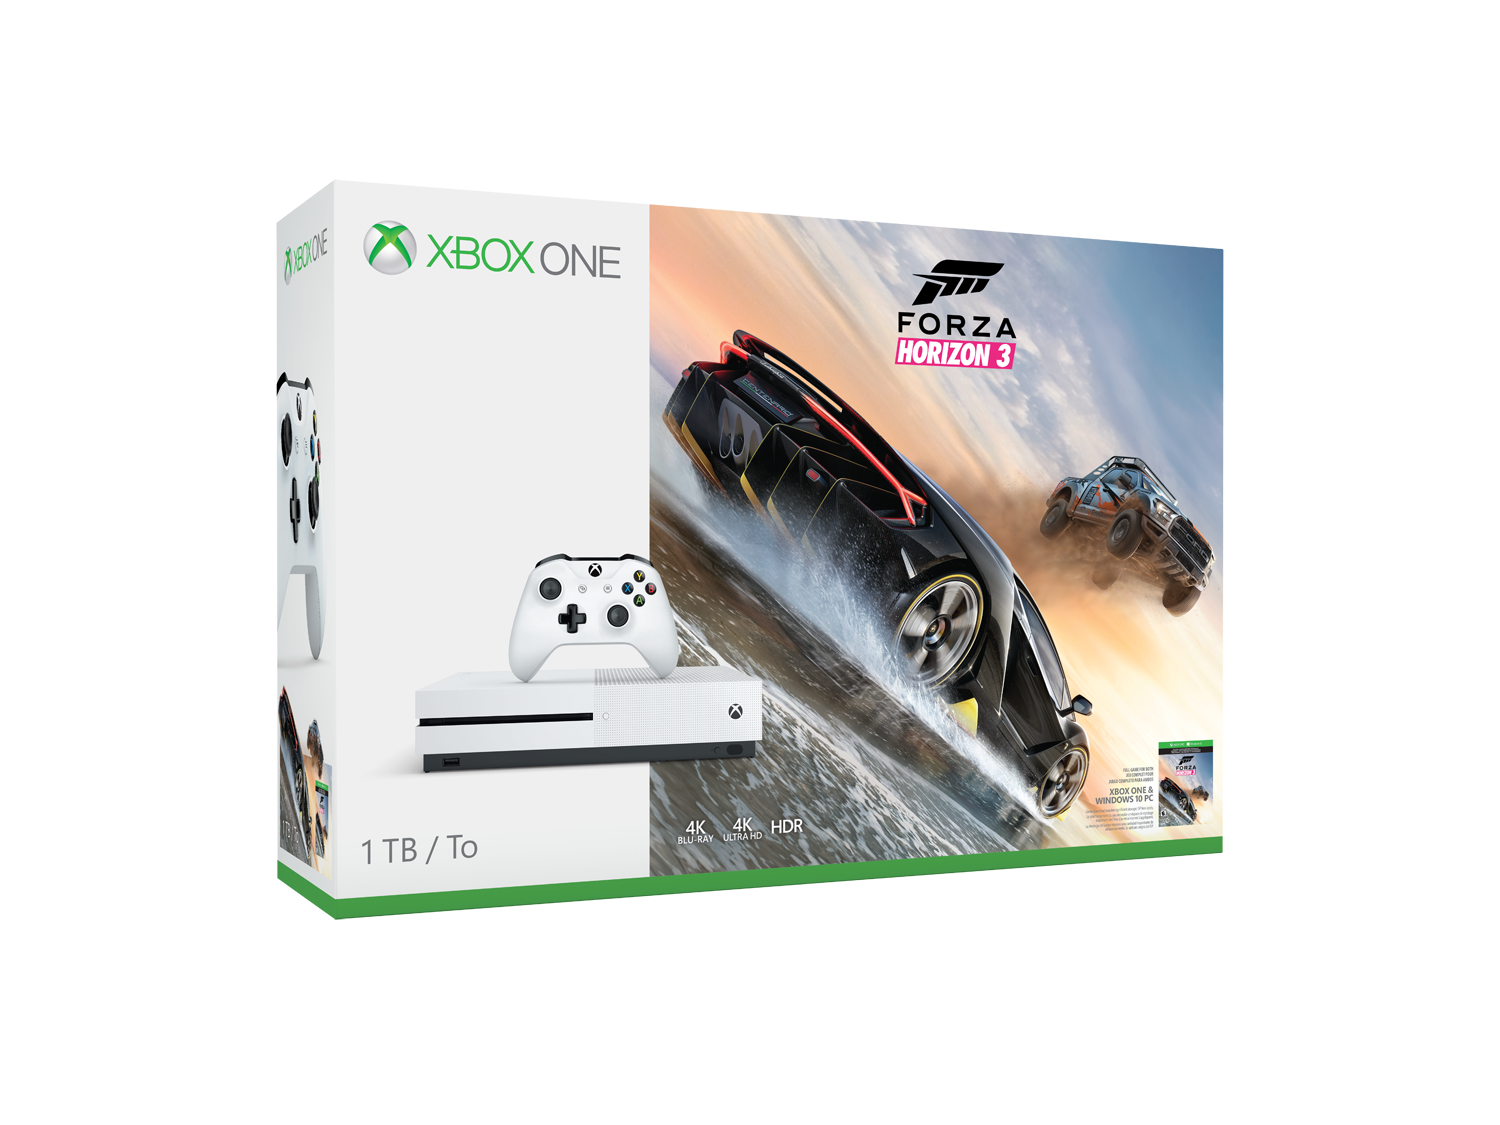 new xbox one s bundle with forza horizon 3 revealed by microsoft. Black Bedroom Furniture Sets. Home Design Ideas